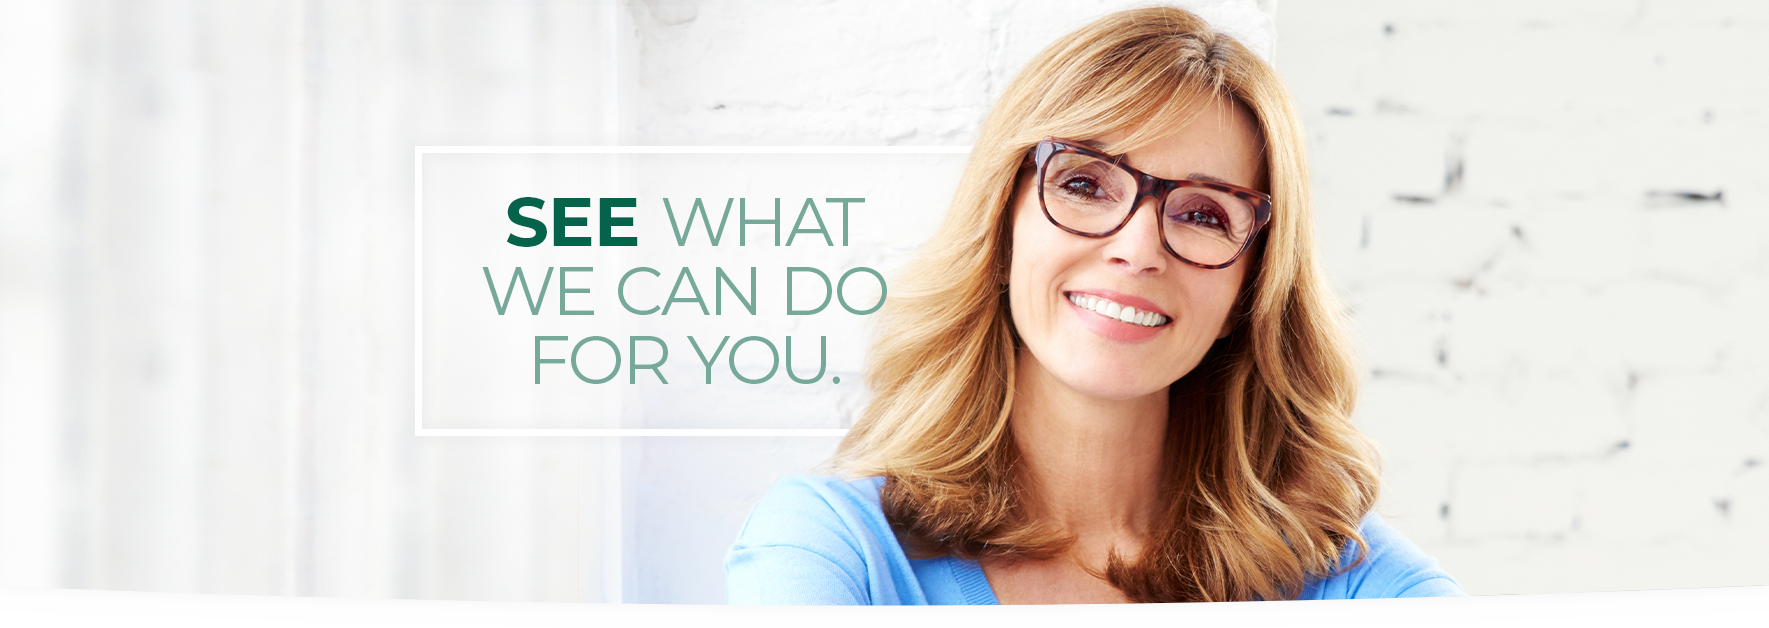 See what we can do for you with our services and eyeglass center